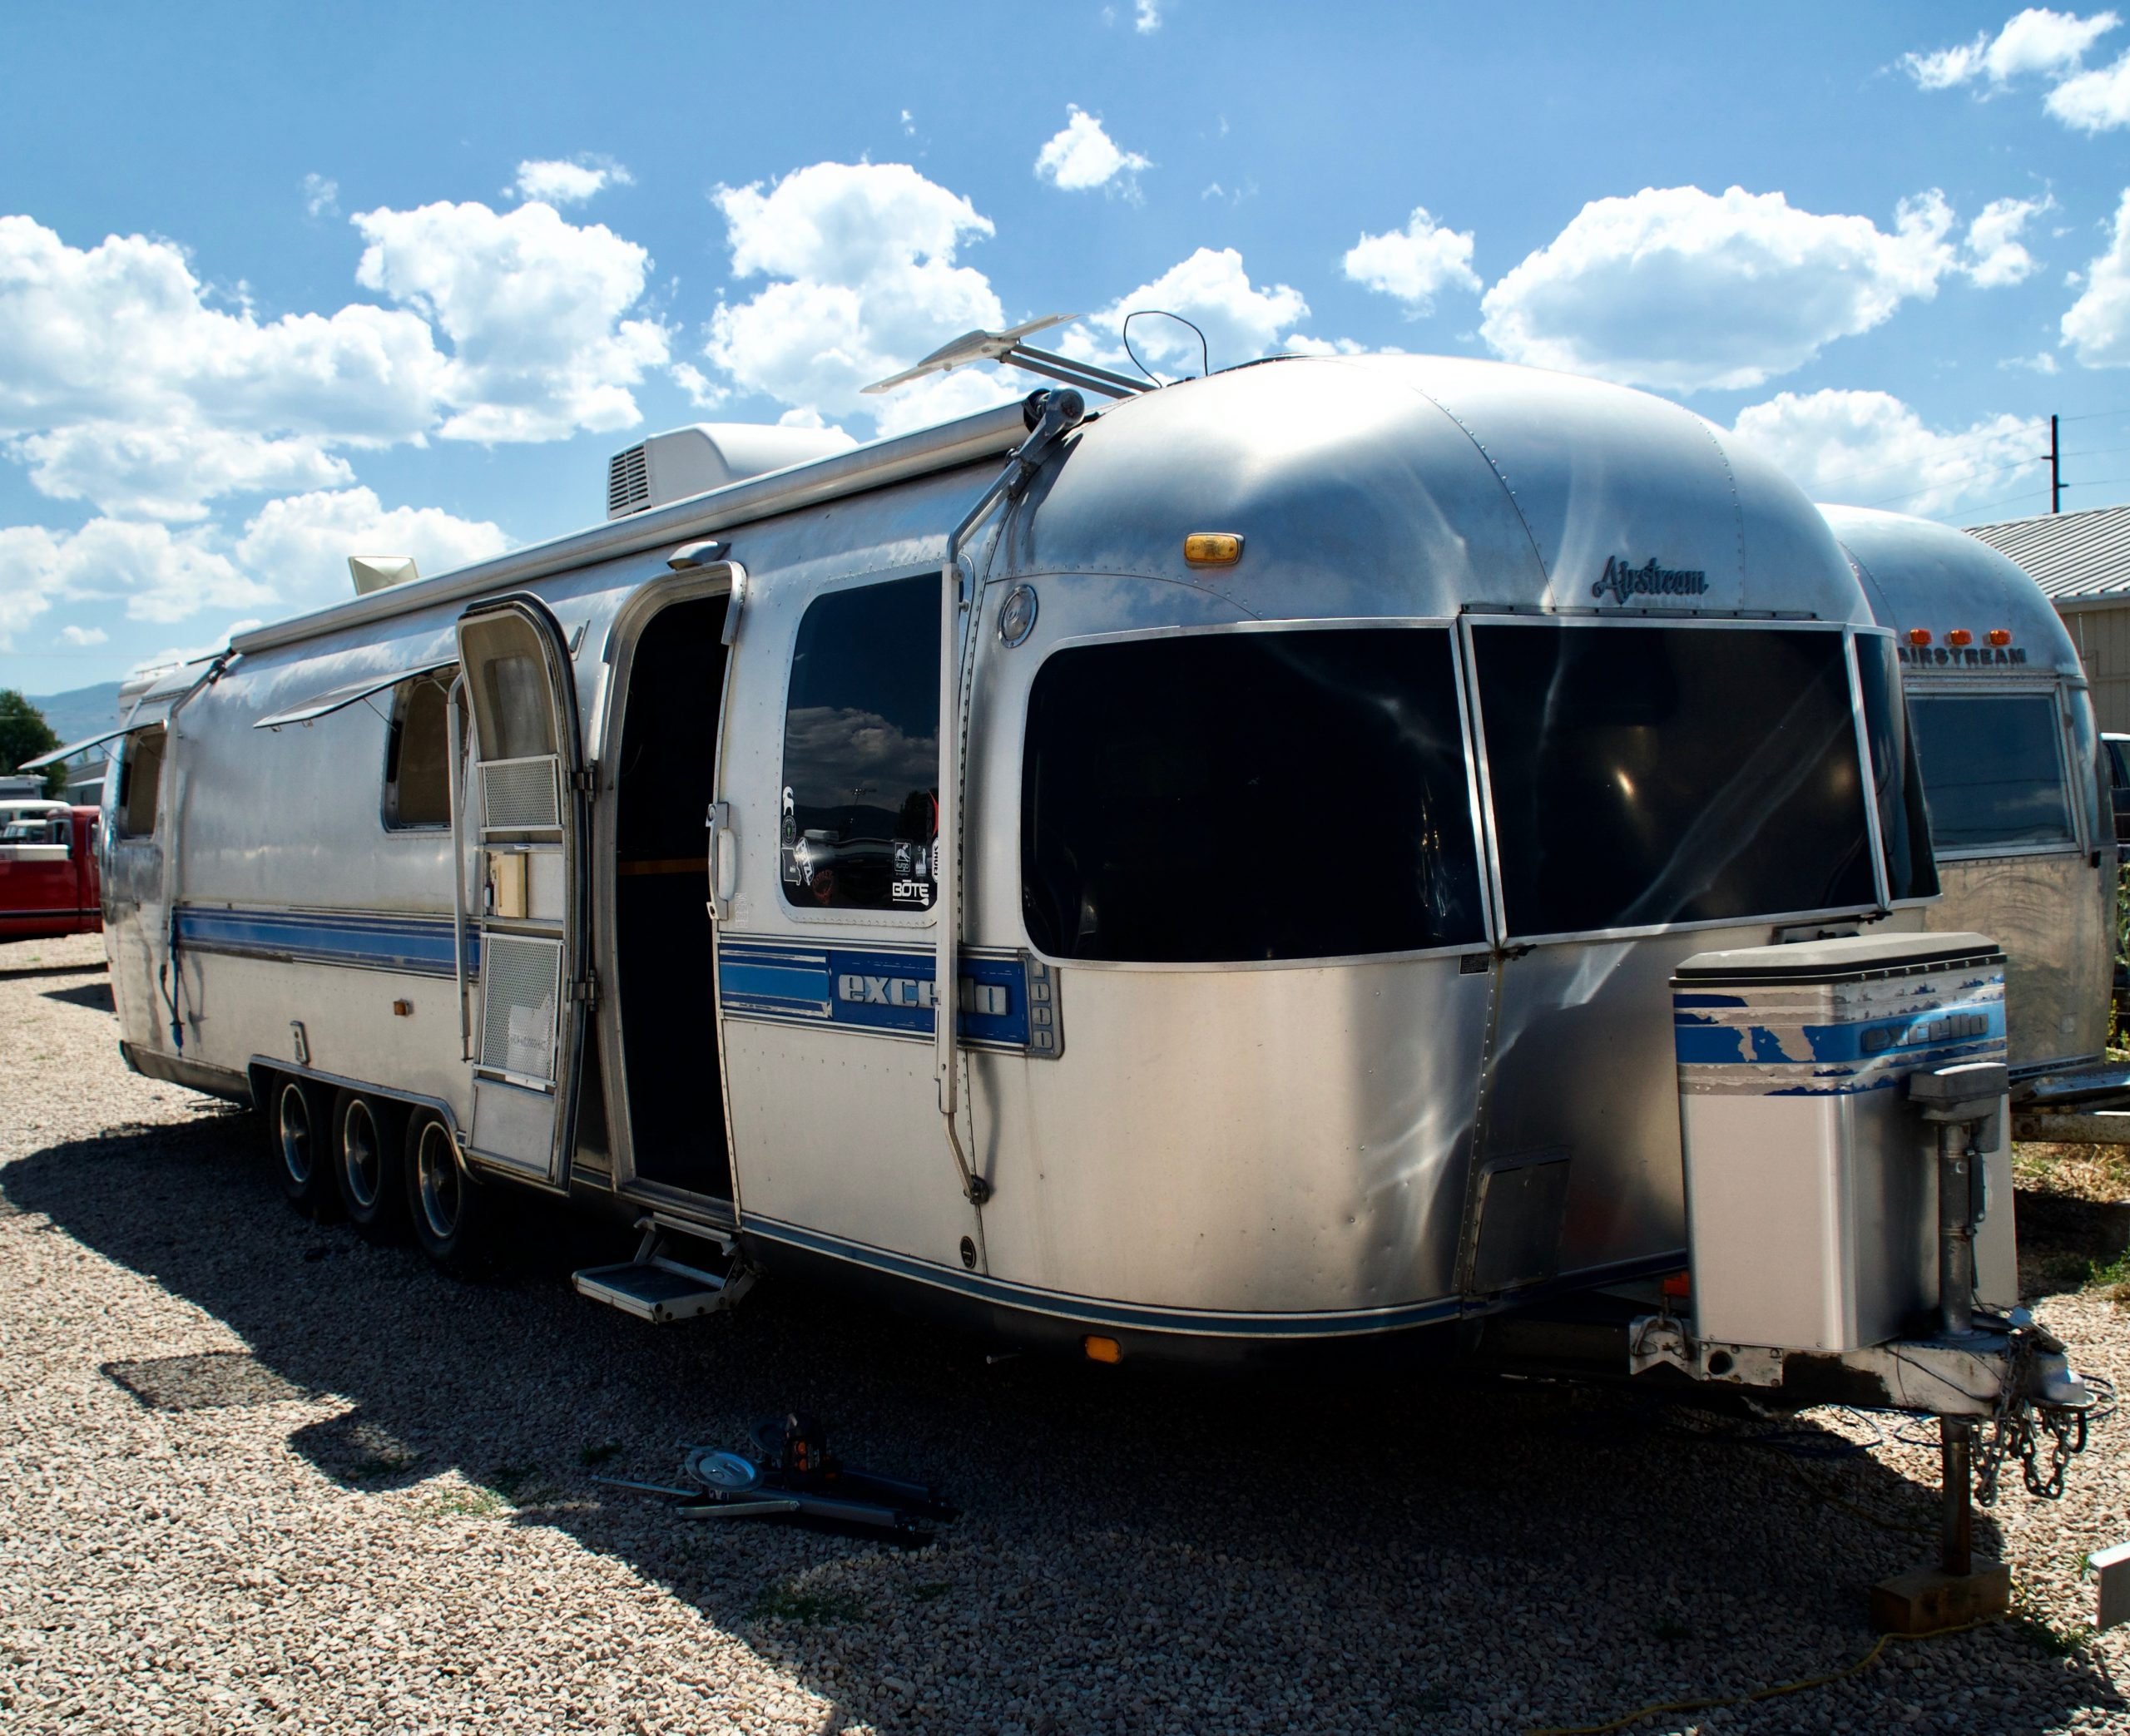 Airstream Trailer Design Project